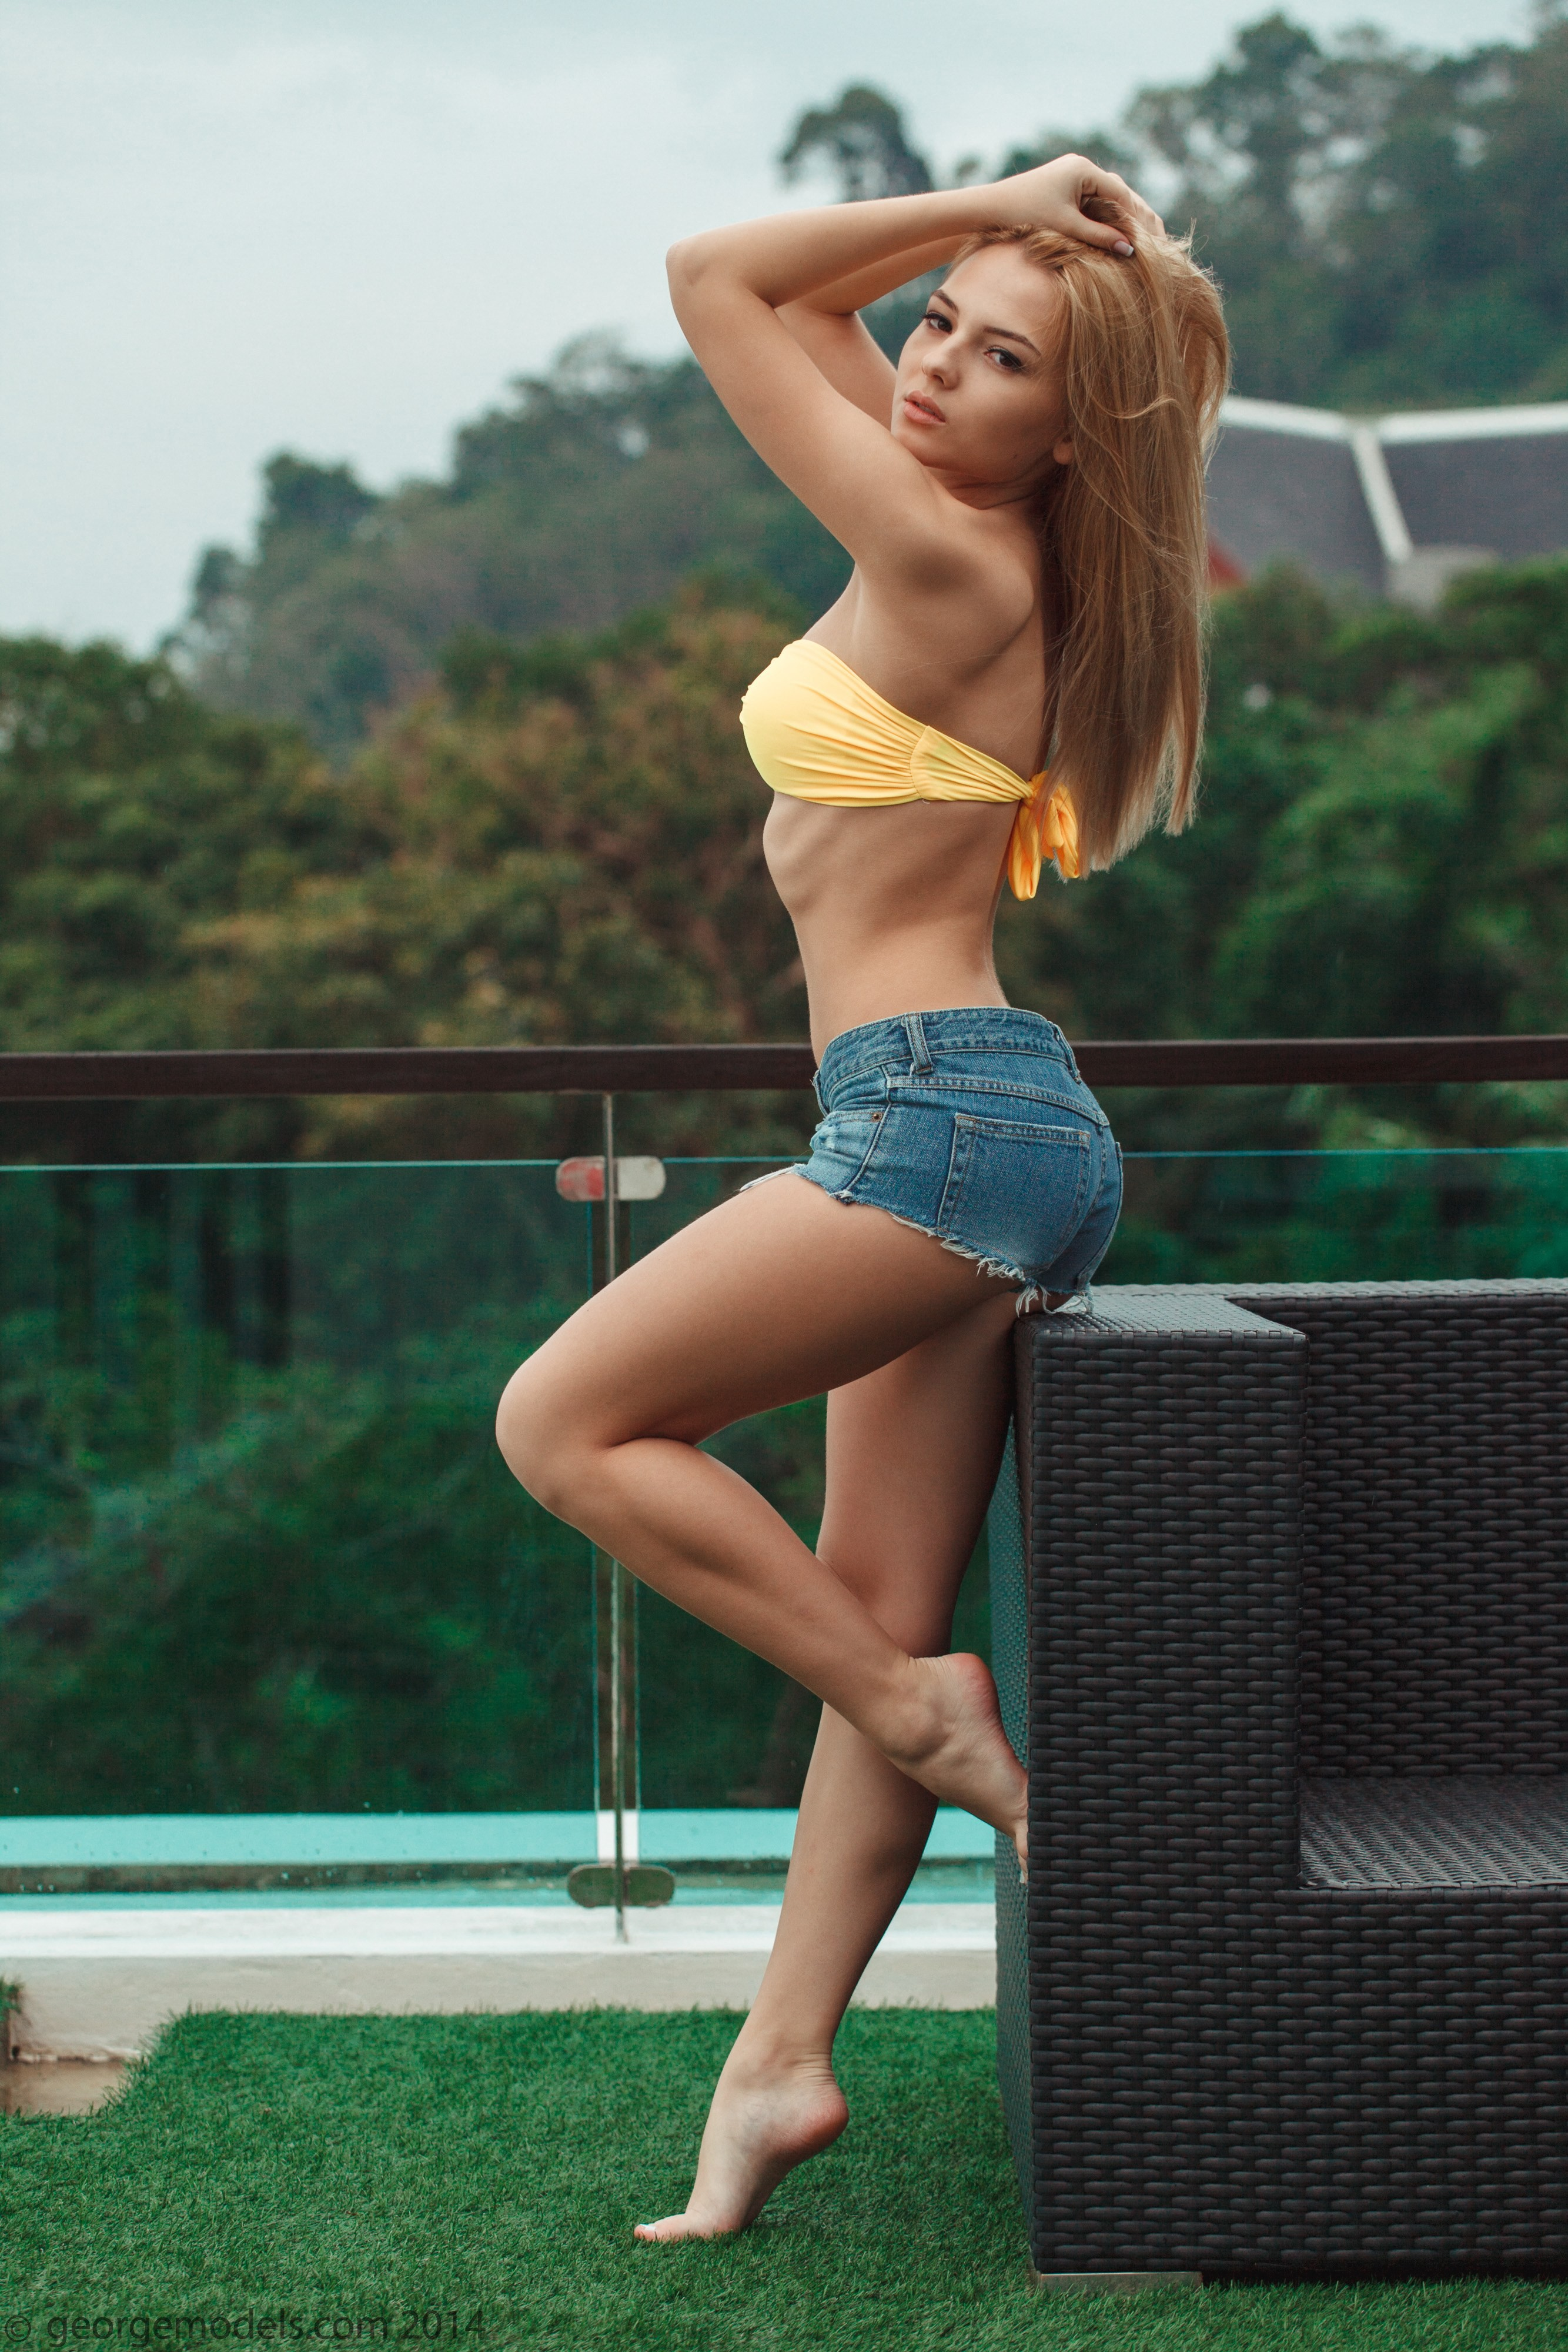 Digitalminx.com - Models - Tatyana Georgieva - Page 7: http://digitalminx.com/celeb_pages/models/g/georgieva_tatyana_07.htm